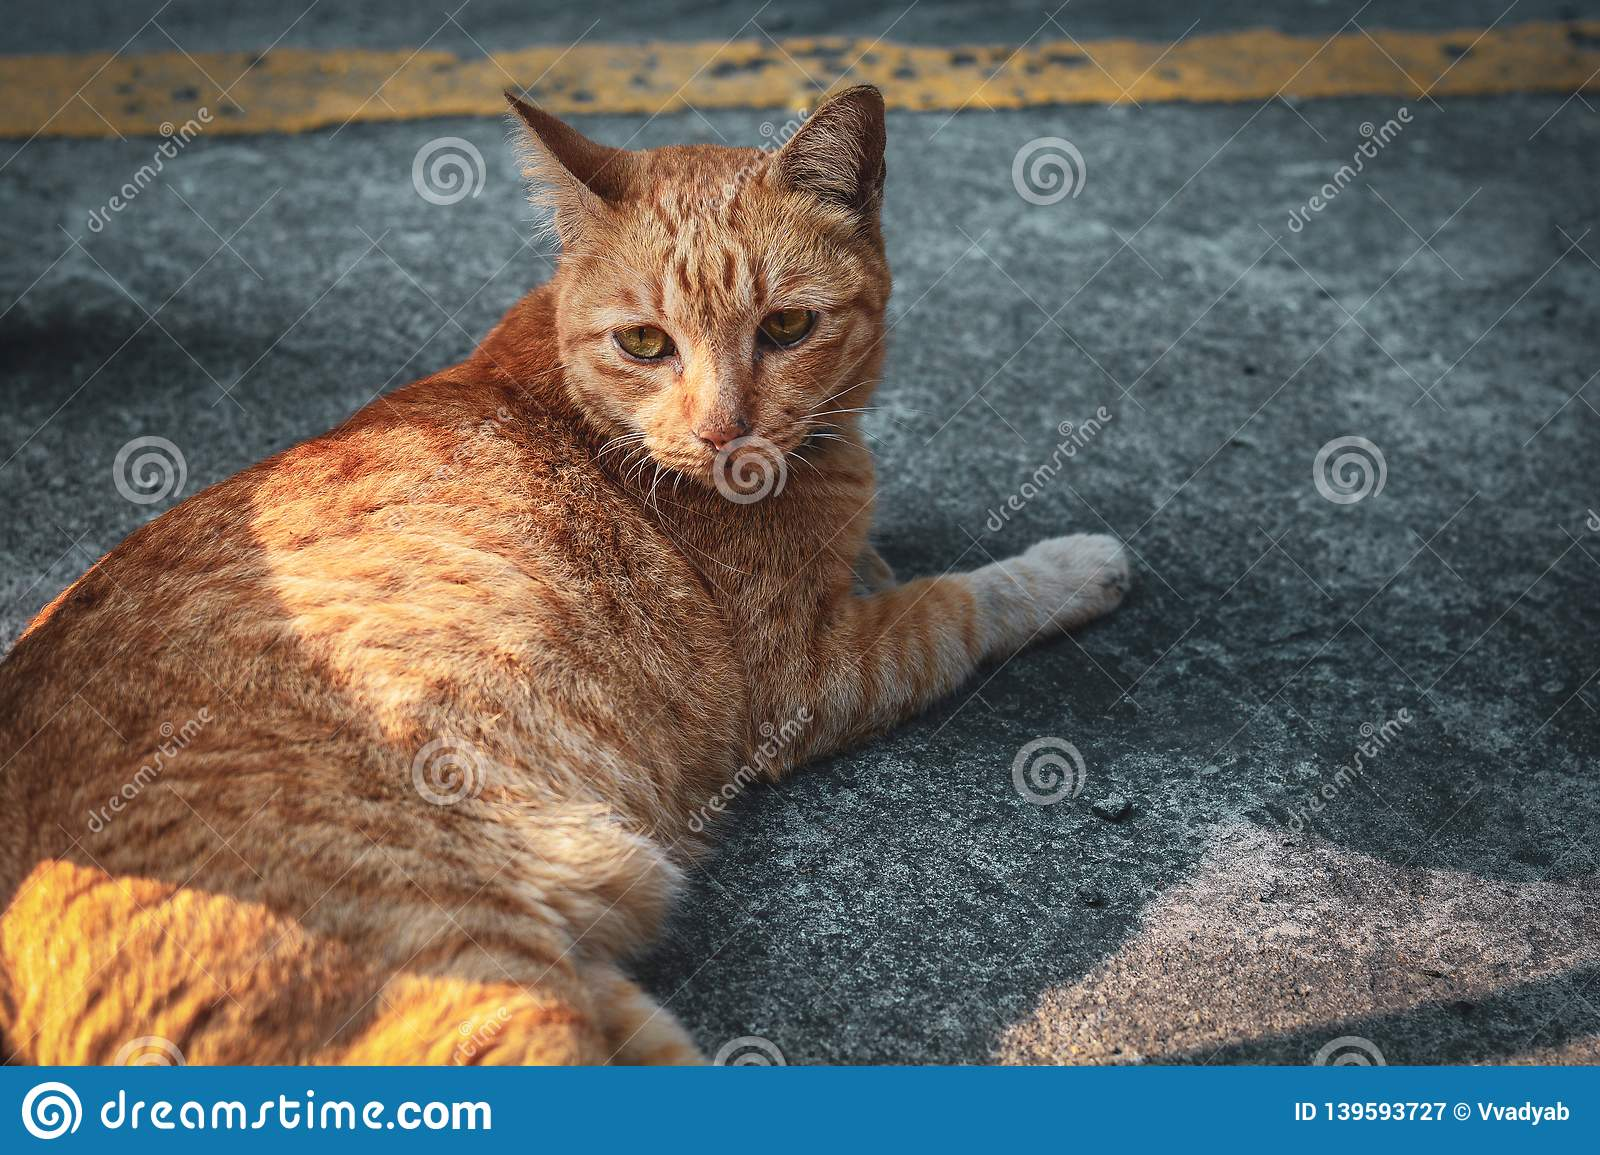 Cute cat portait sleeping on the floor.Kitten looking someting.Cat with tiger striped relaxing